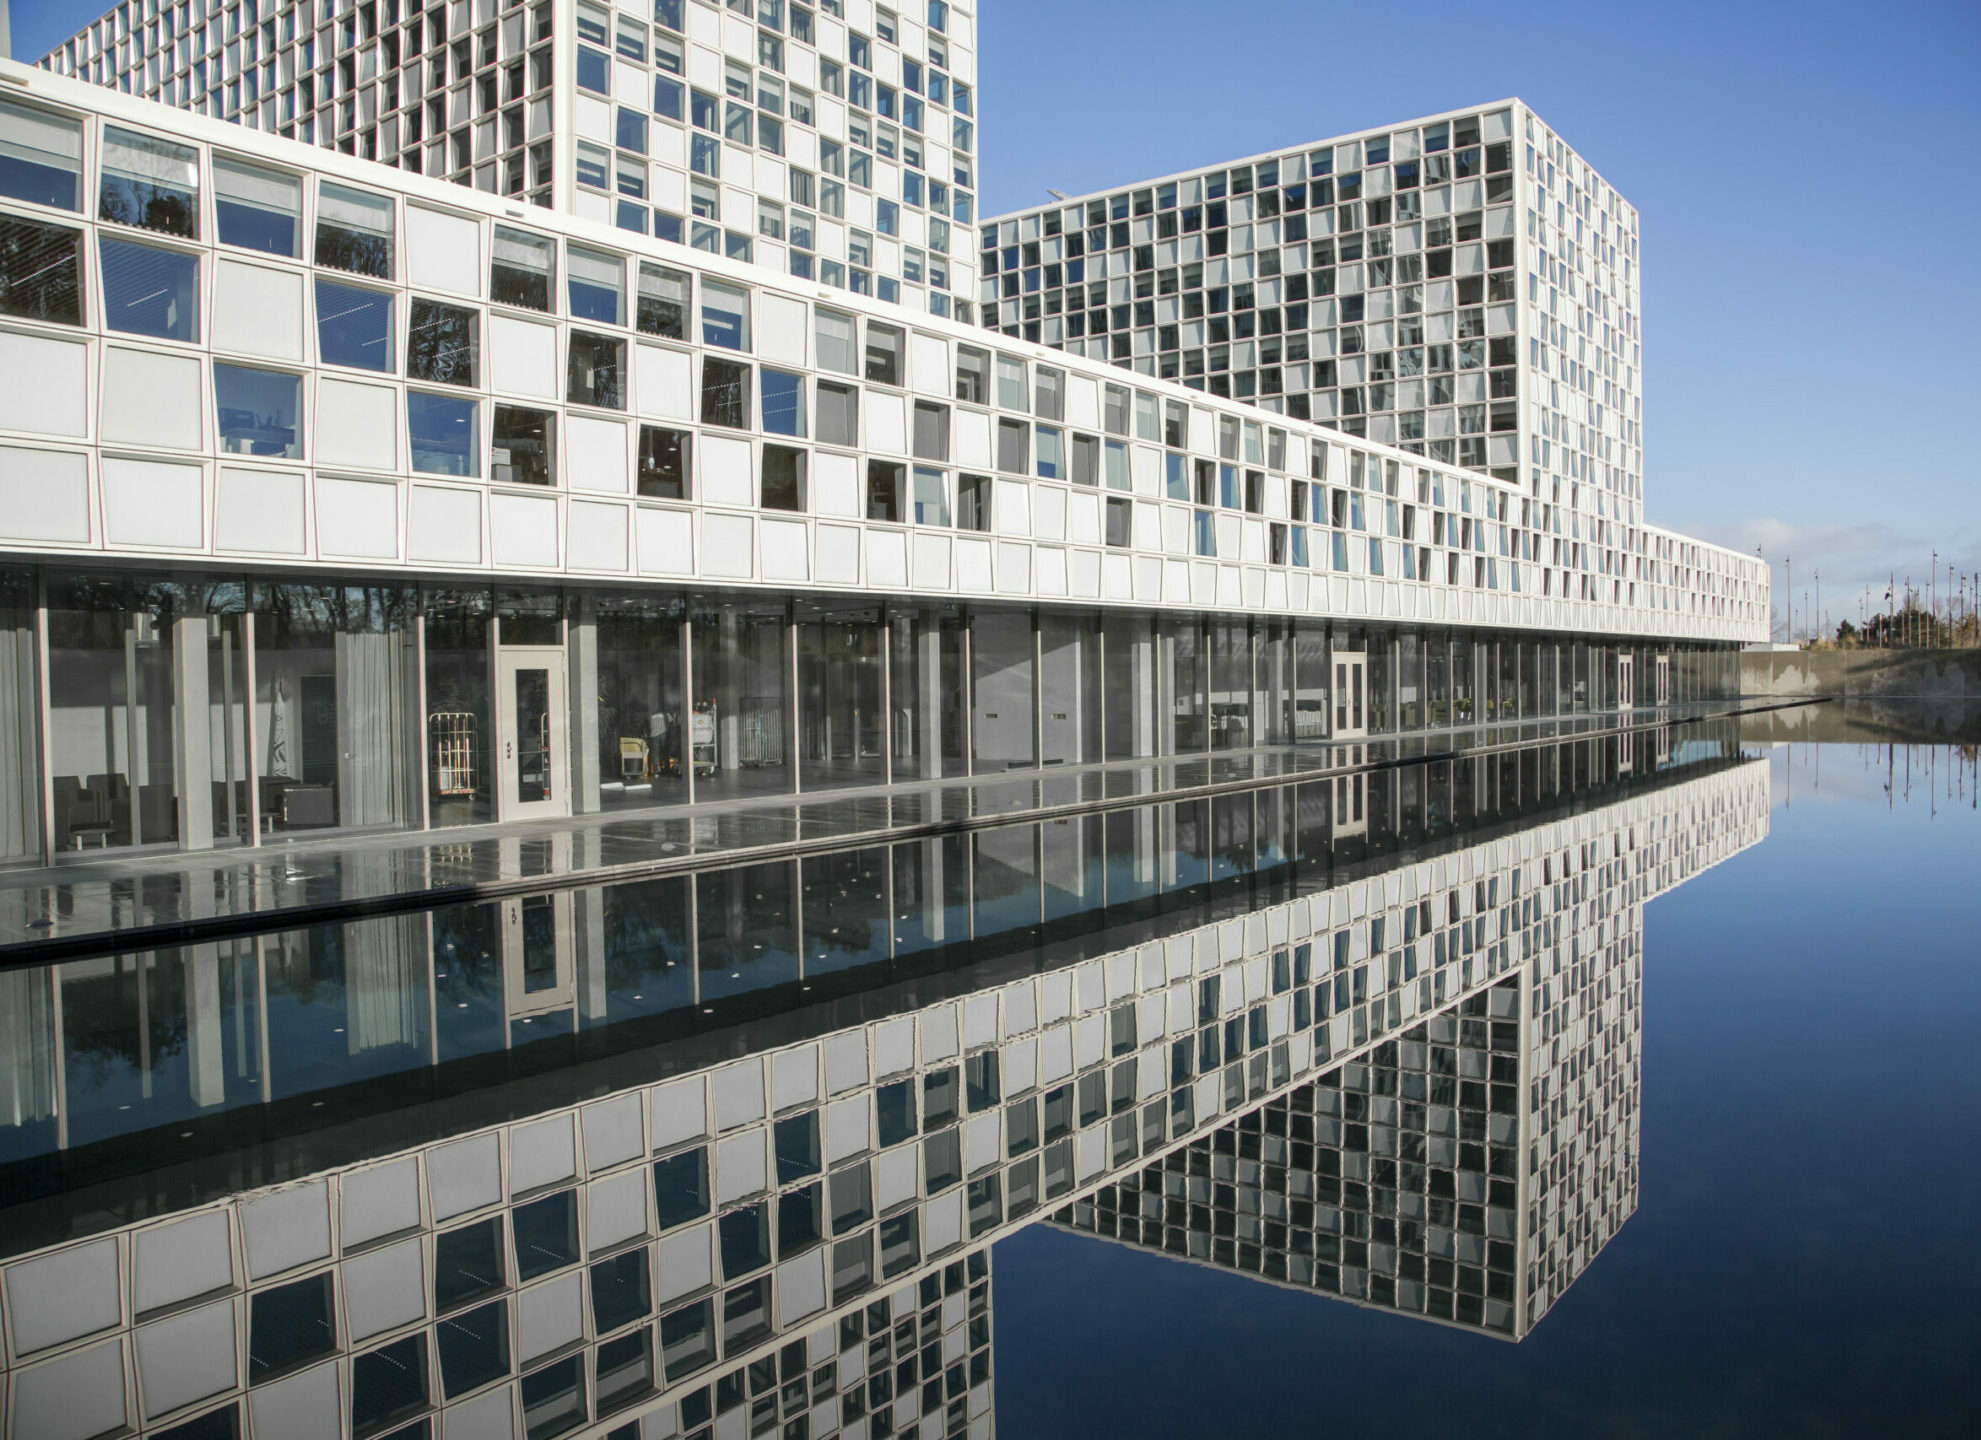 The building of the International Criminal Court.